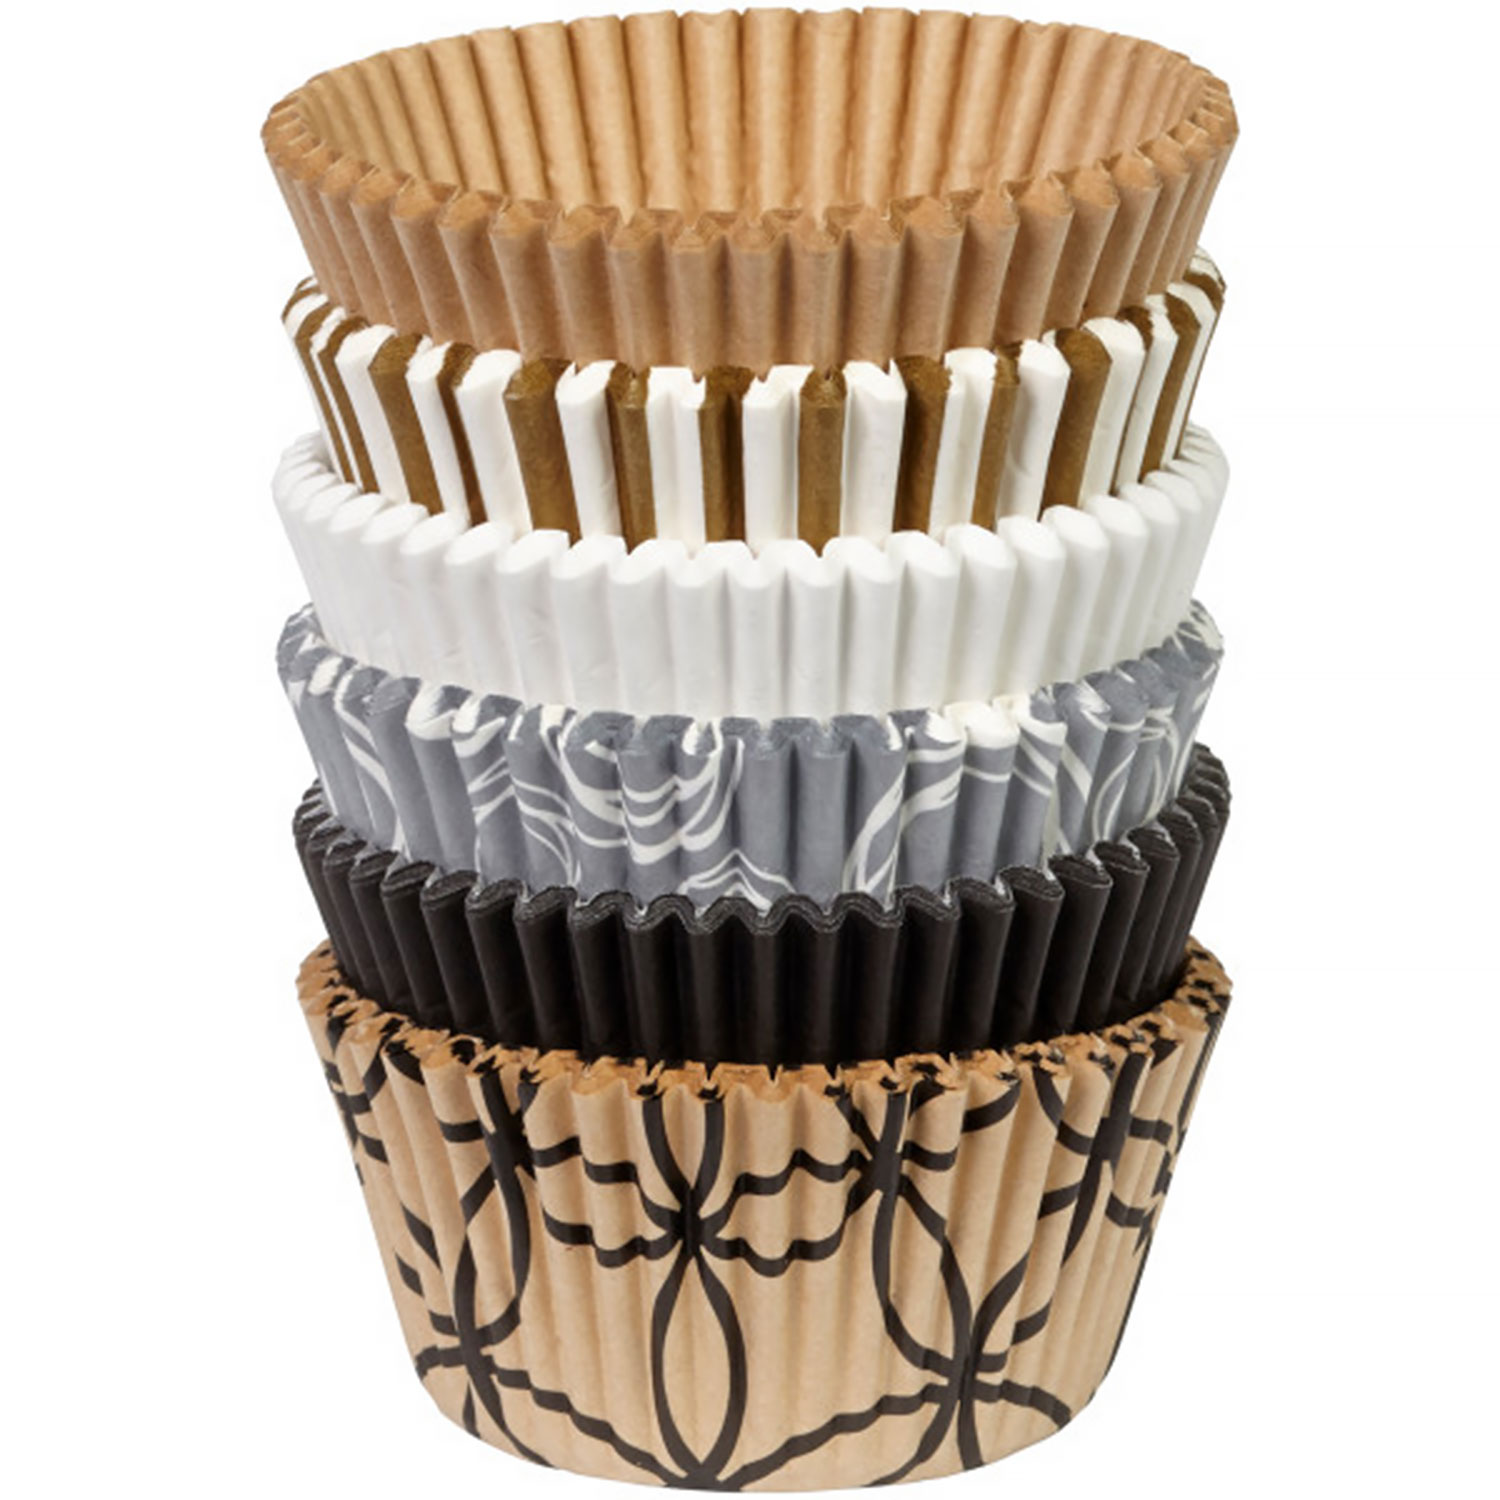 Celebrate Assortment Standard Baking Cups